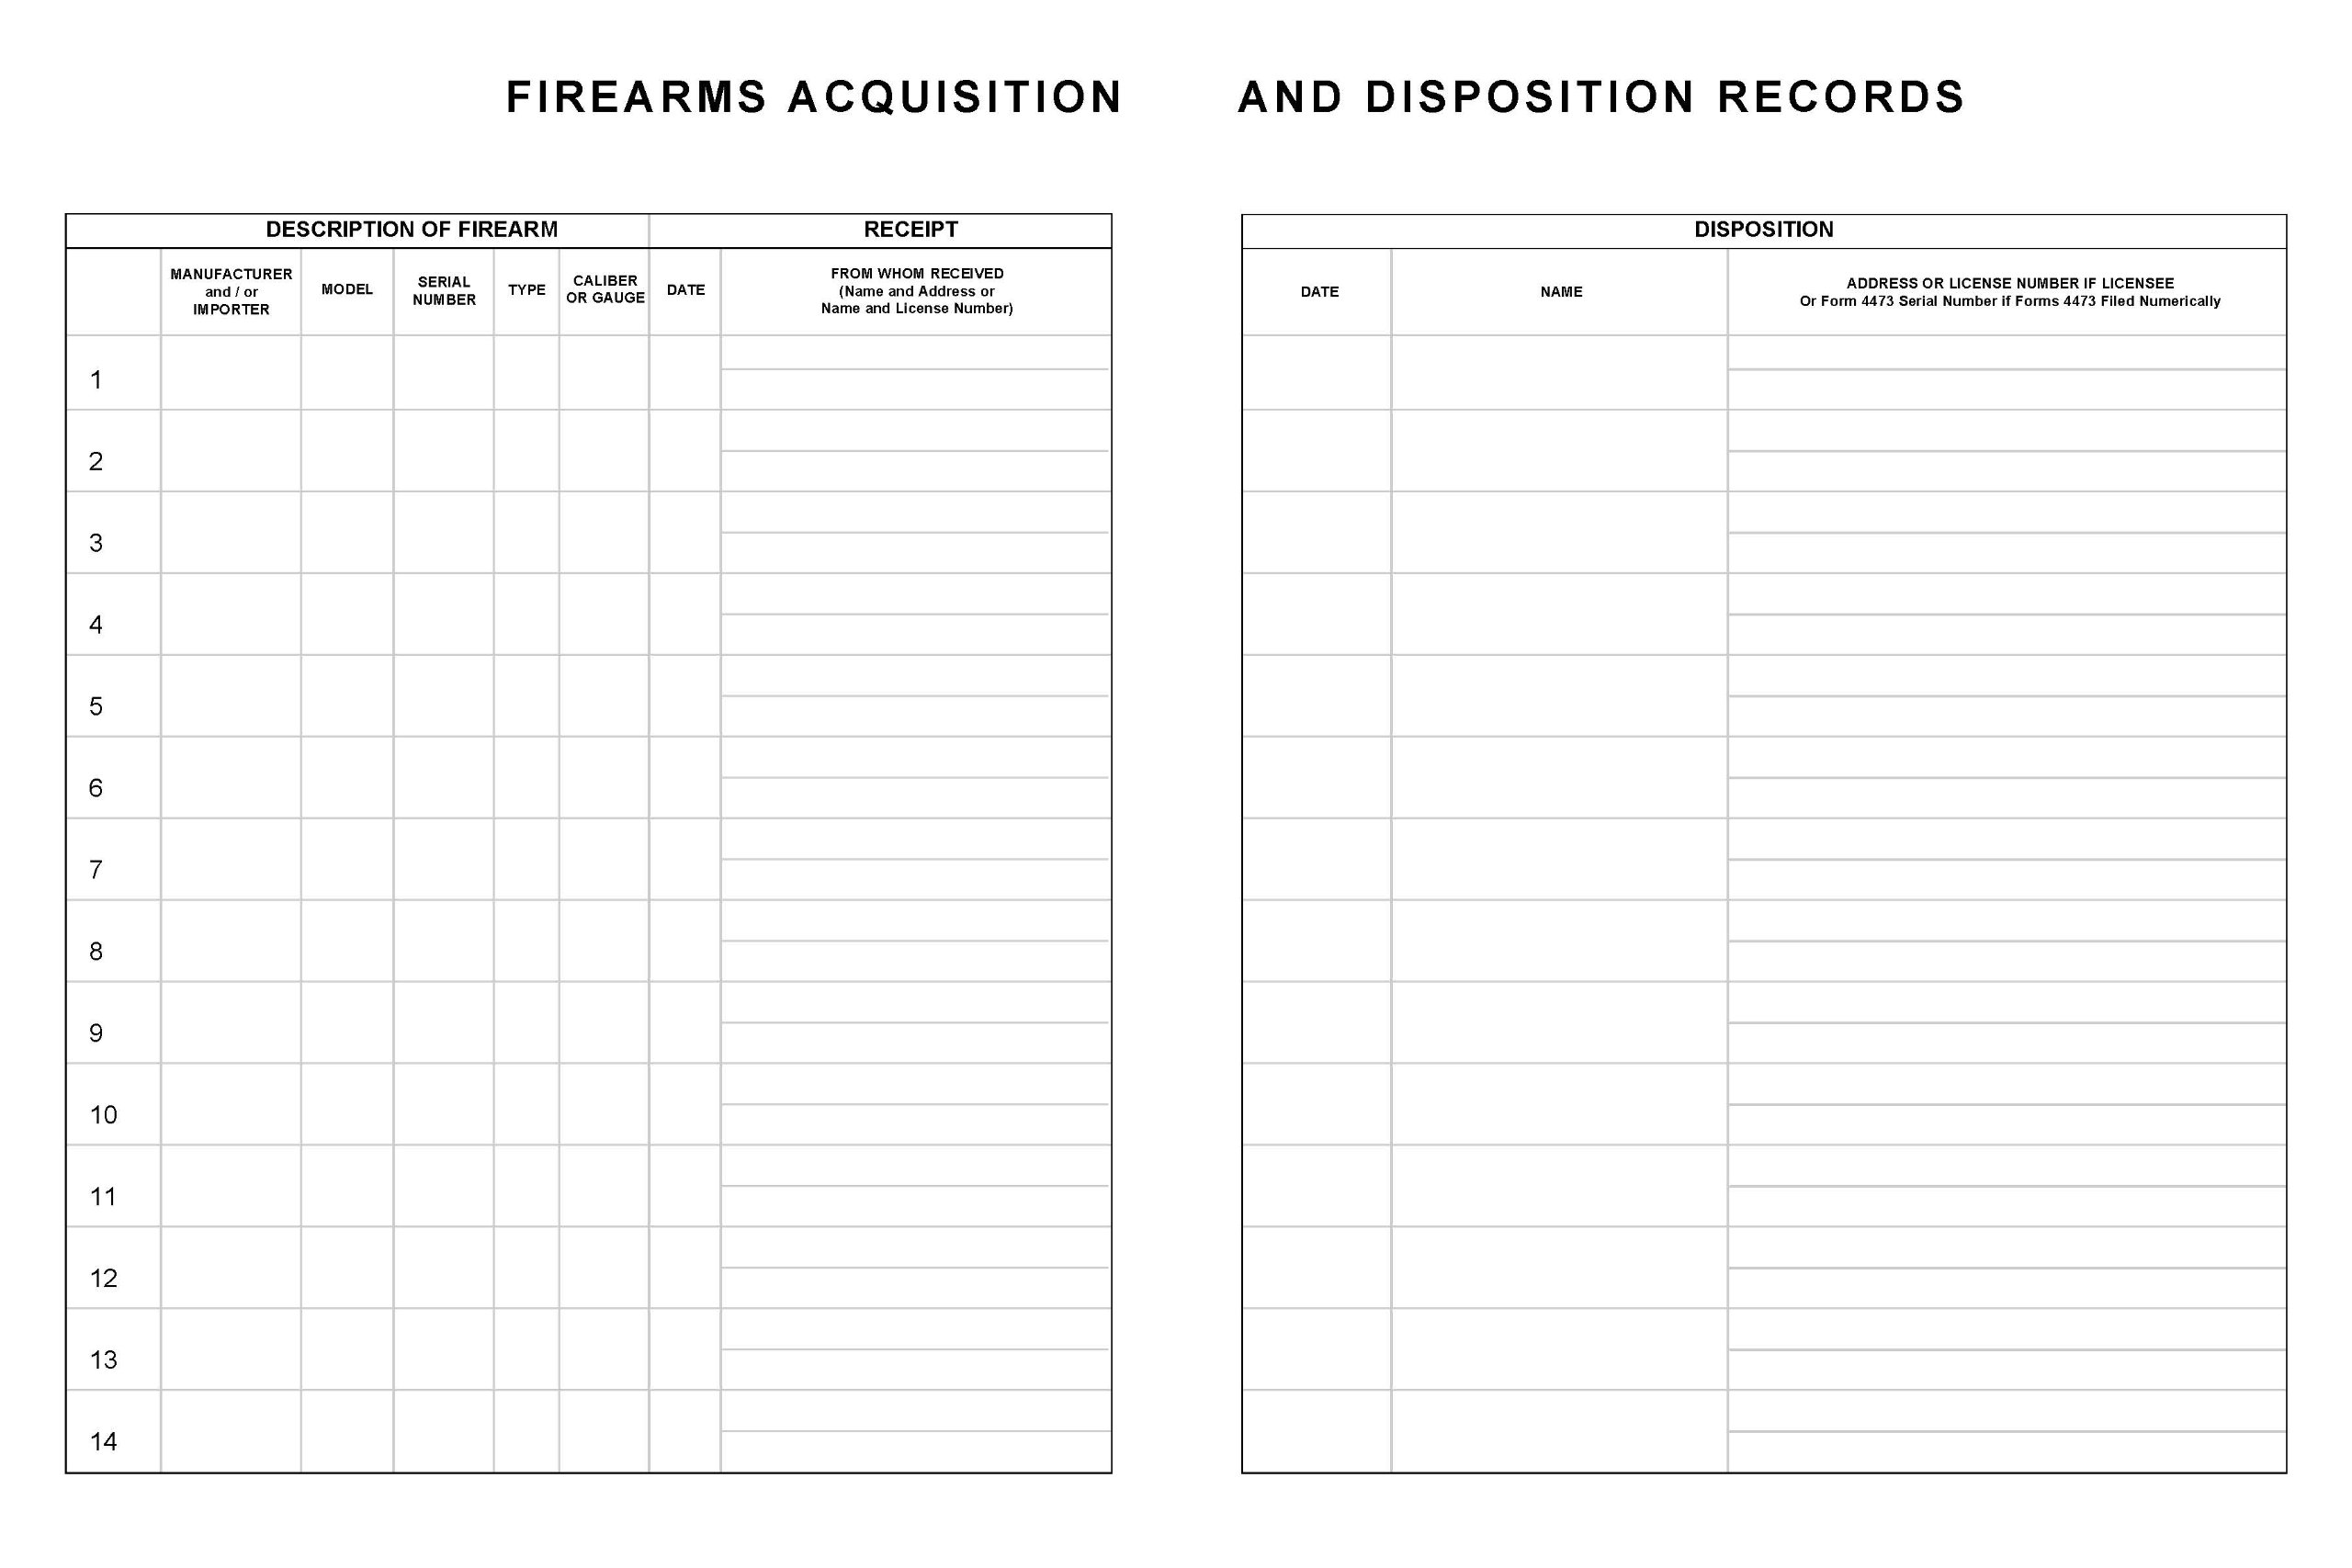 BookFactory Gun Log Book - 120 Pages, Black Cover, Smyth Sewn Hardbound, 8 7/8'' x 11 1/4'' (LOG-120-GUN-02-LKT35)